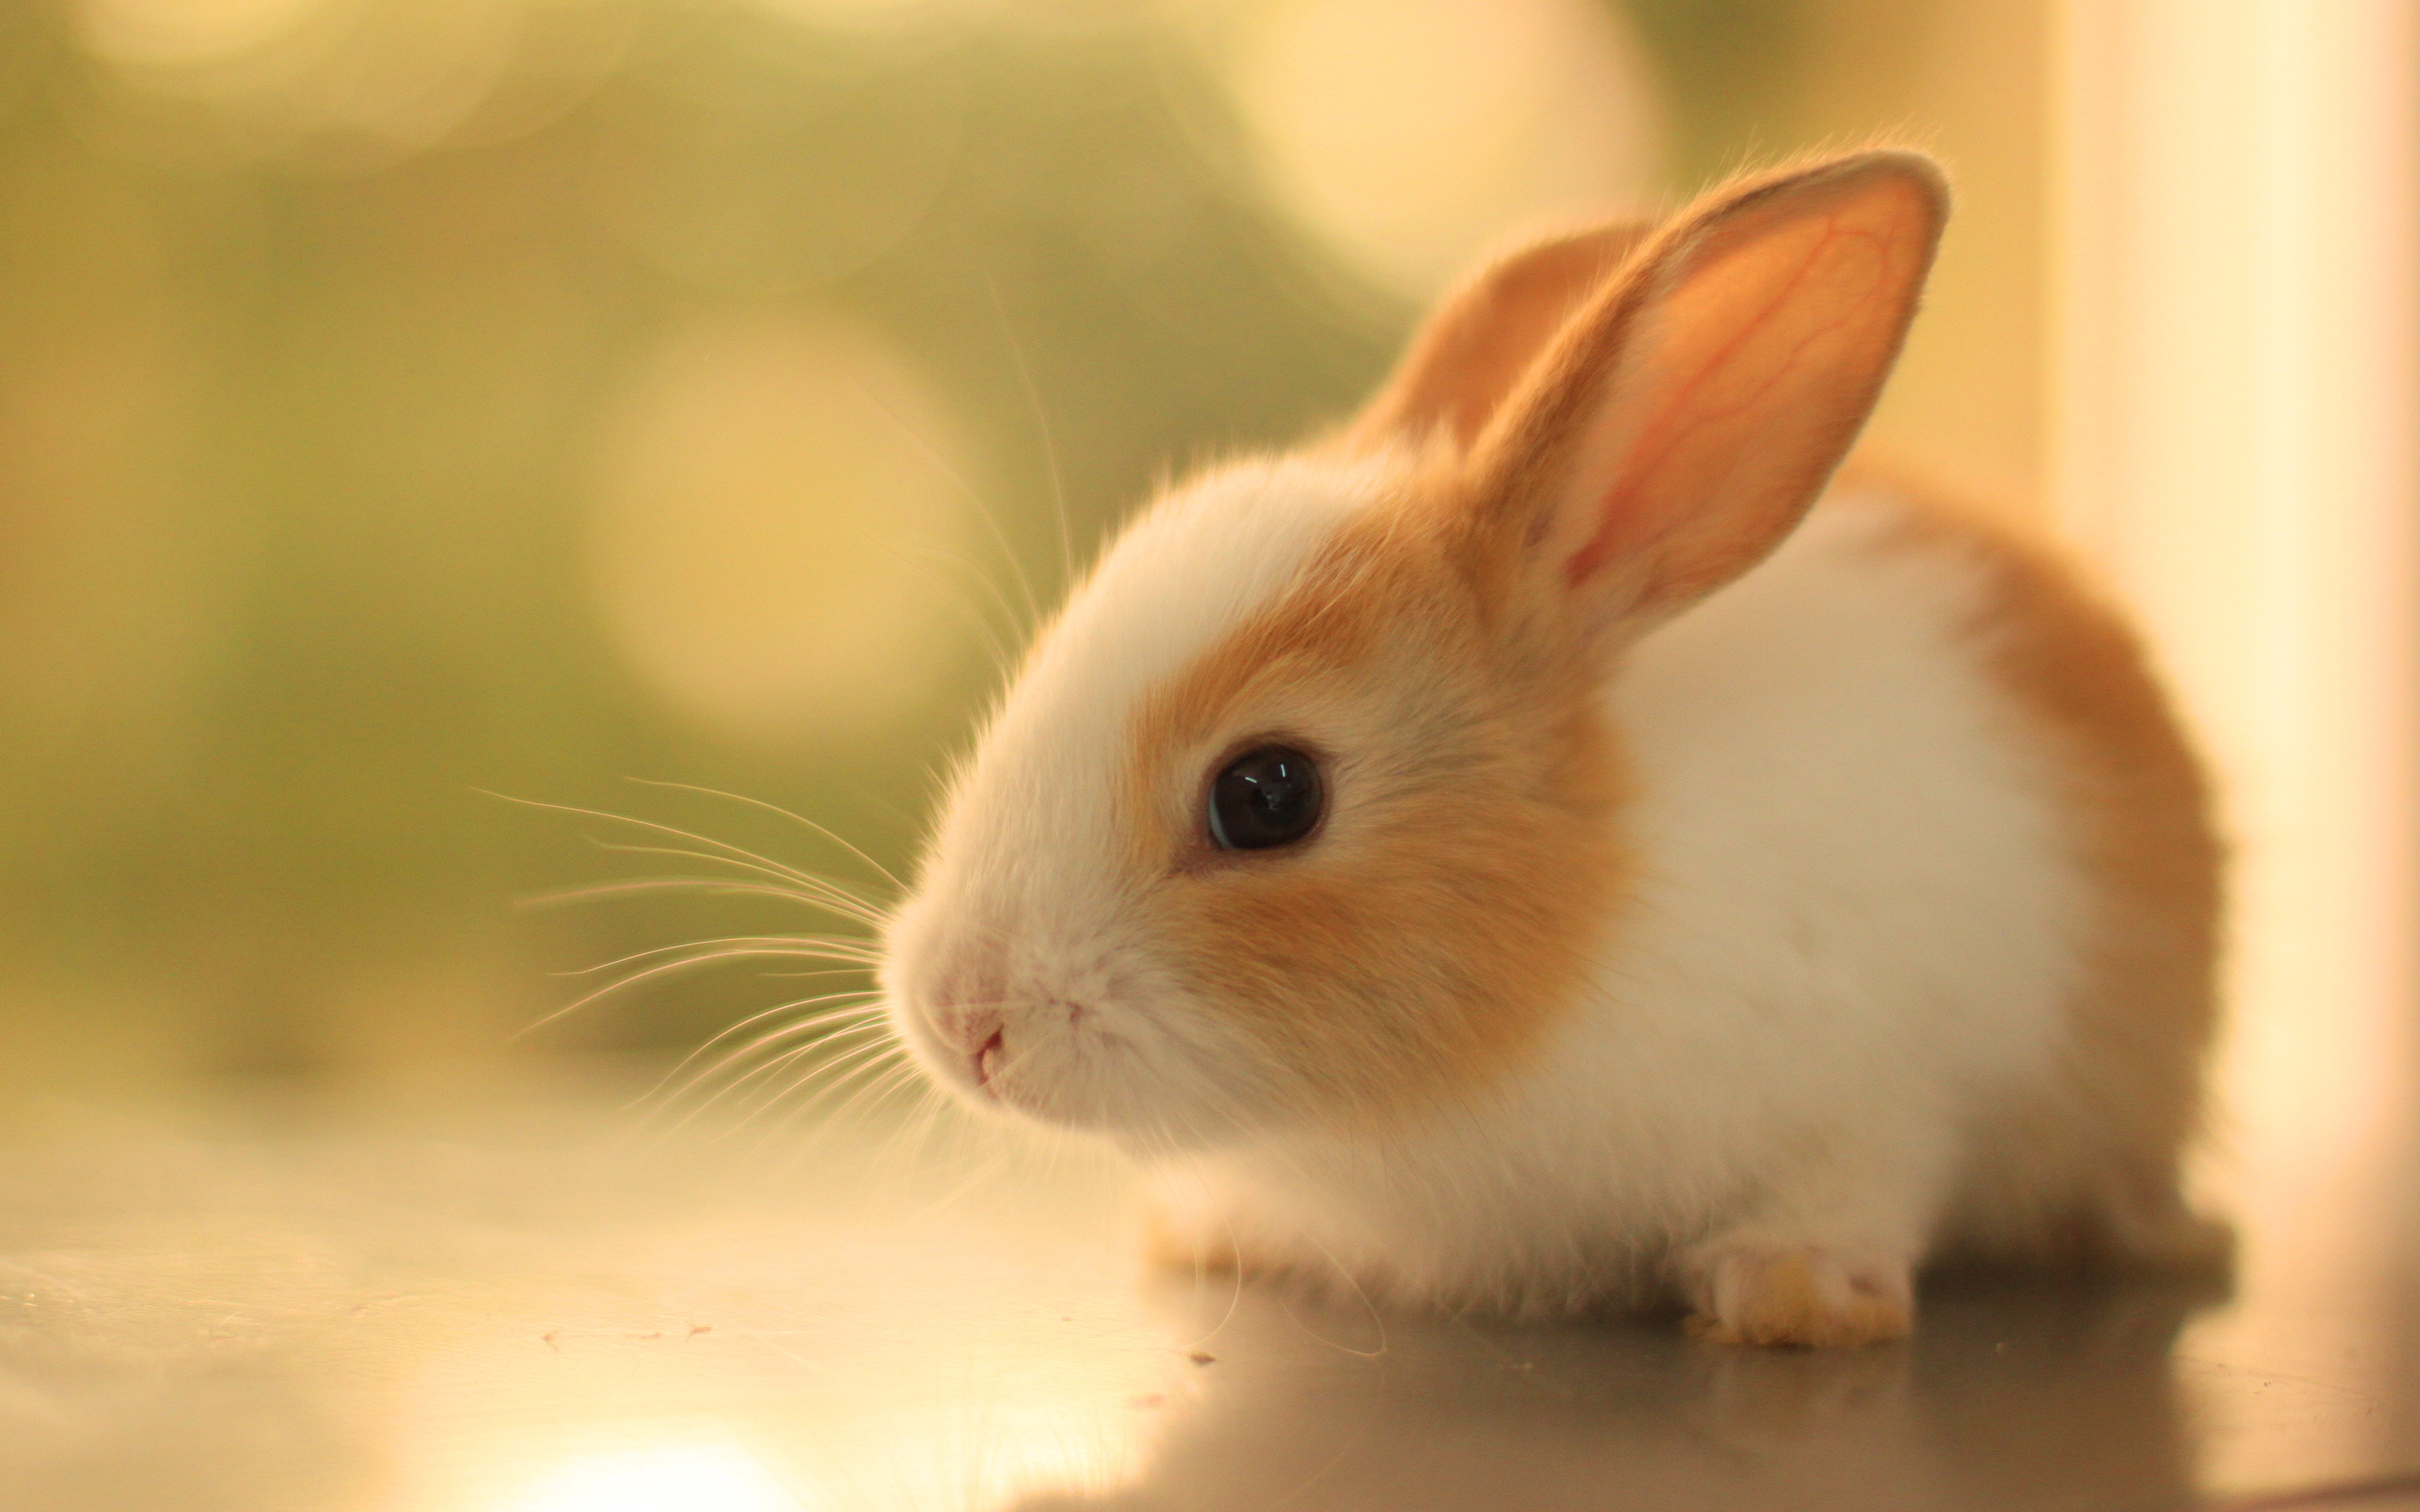 Cute Bunny Wallpaper